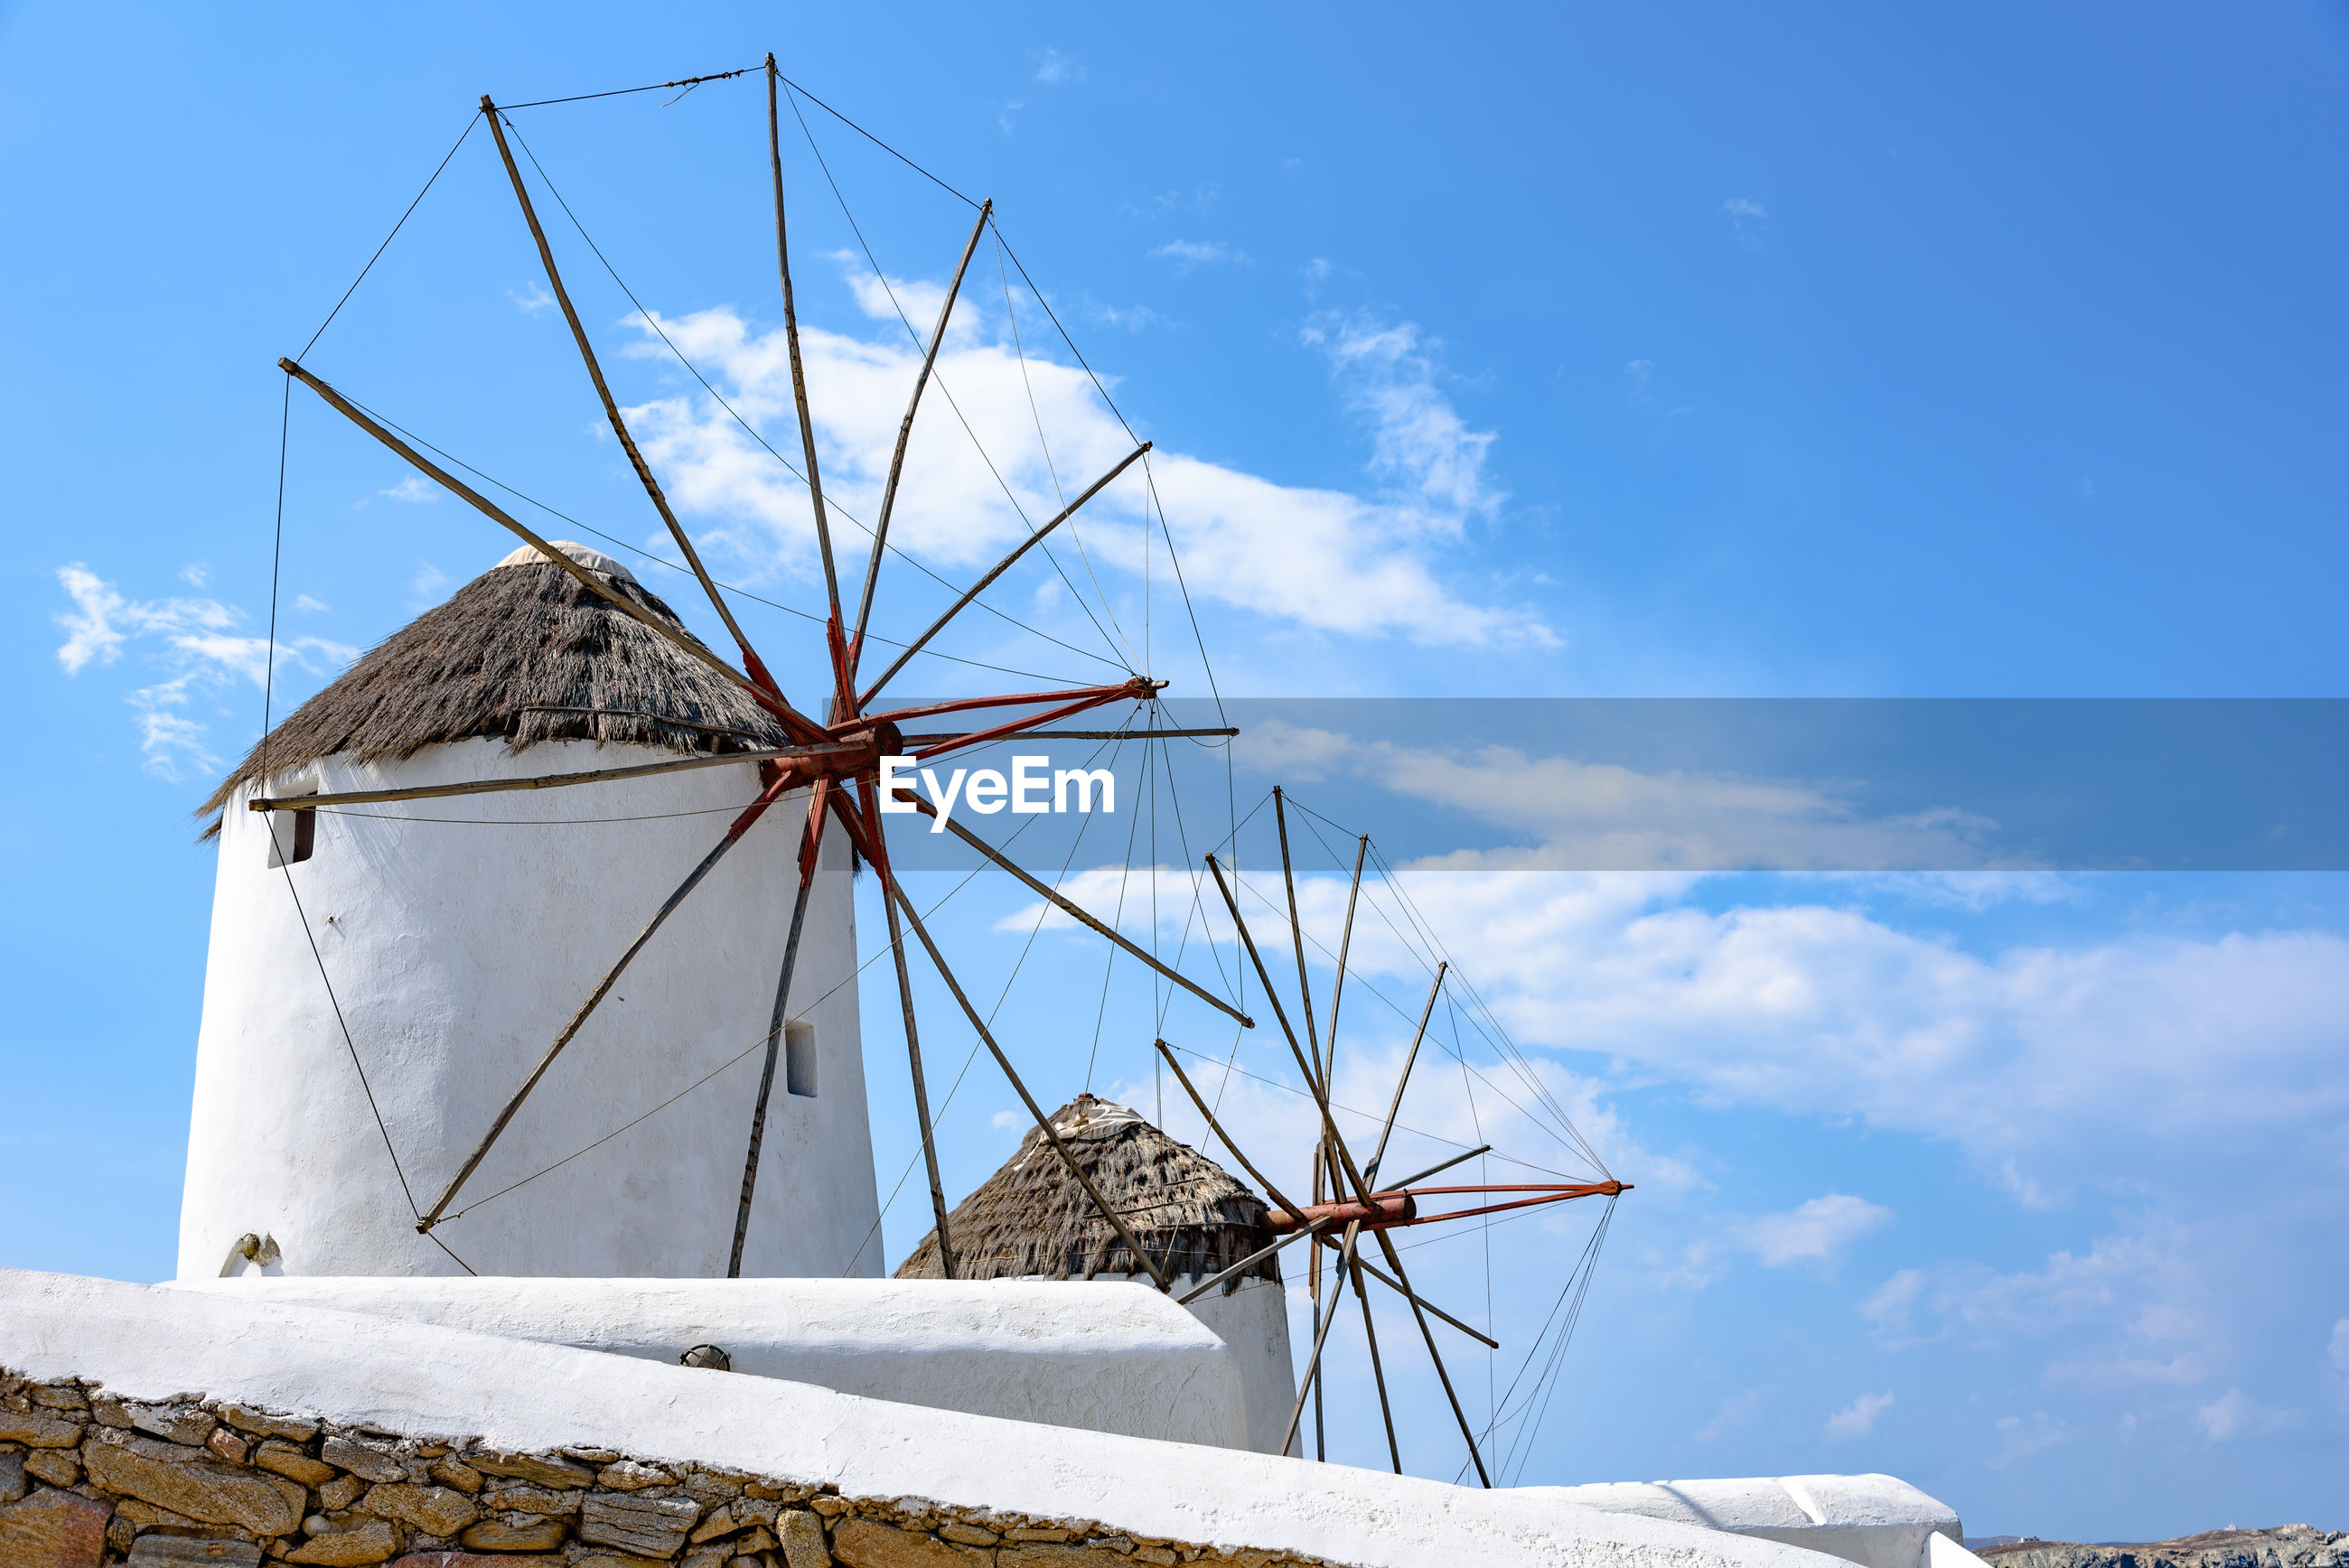 LOW ANGLE VIEW OF TRADITIONAL WINDMILLS AGAINST SKY